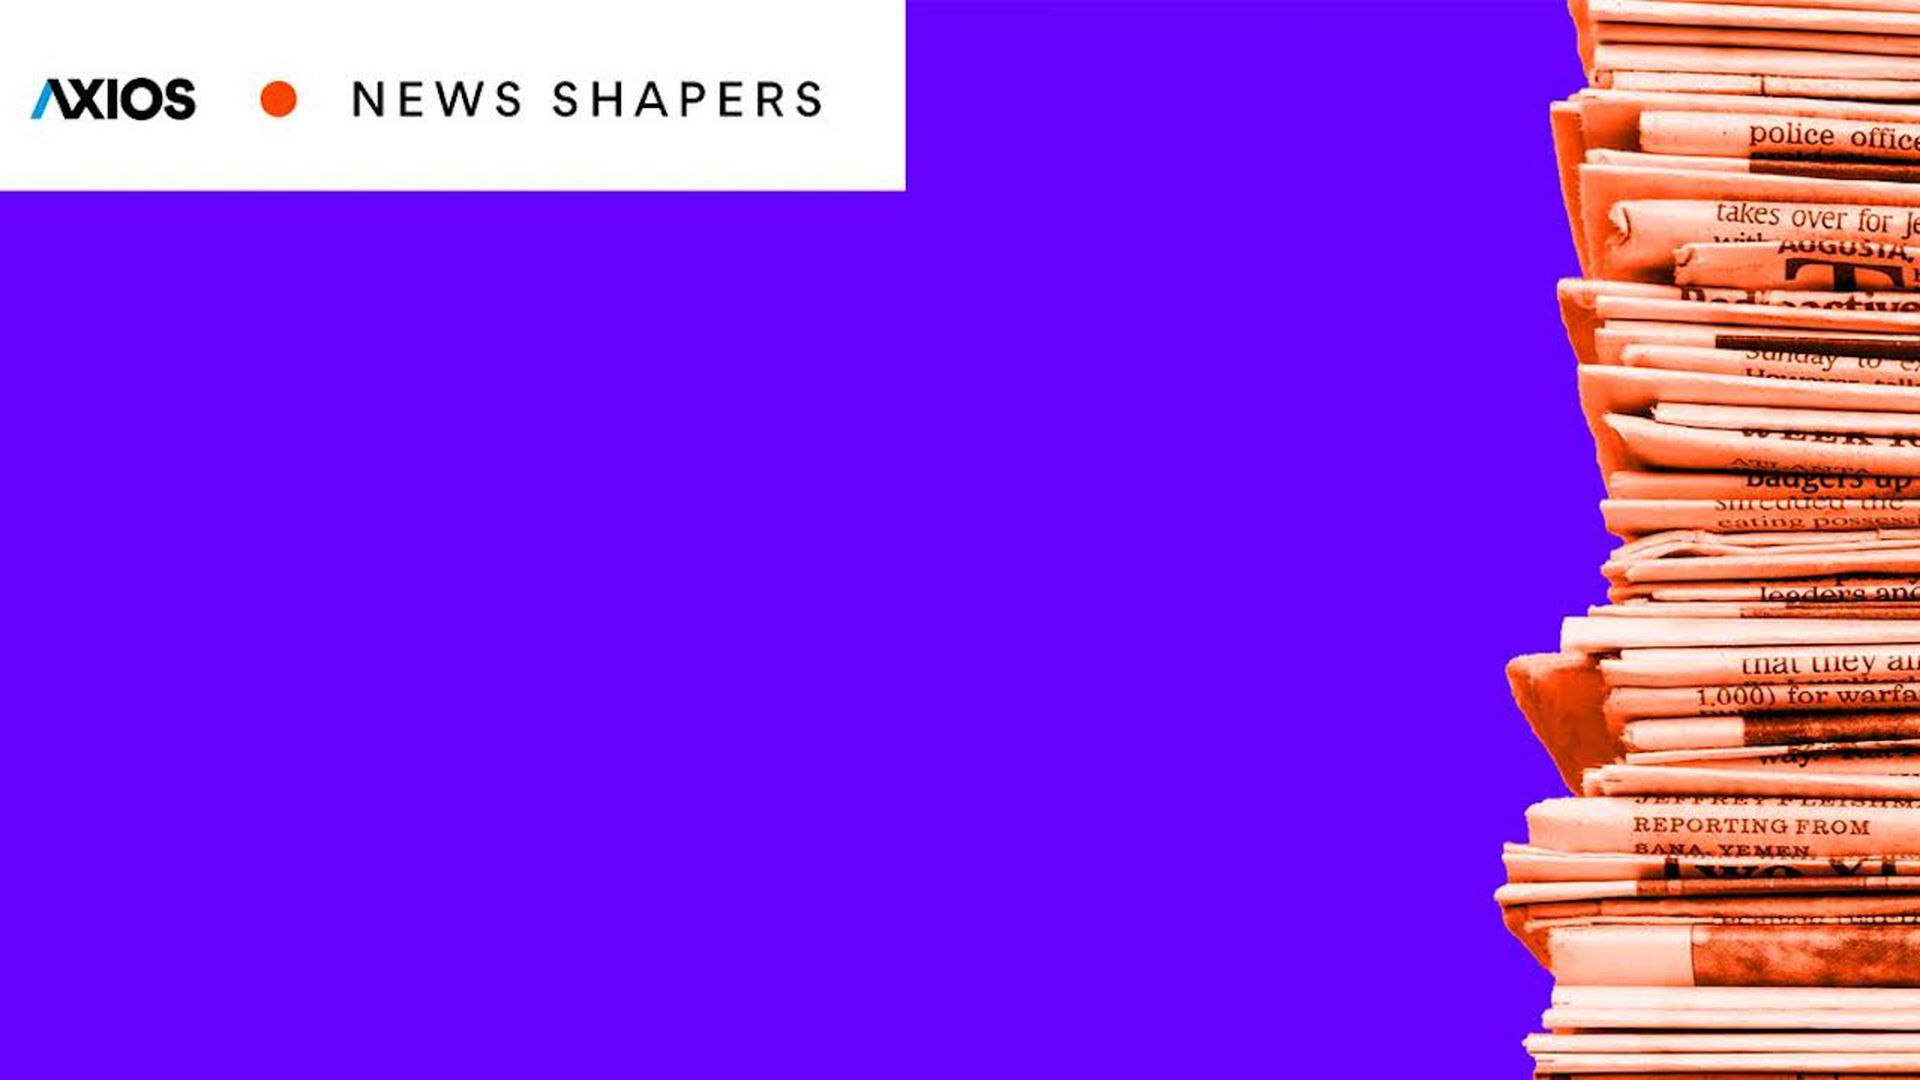 Logo design for the News Shapers event series.